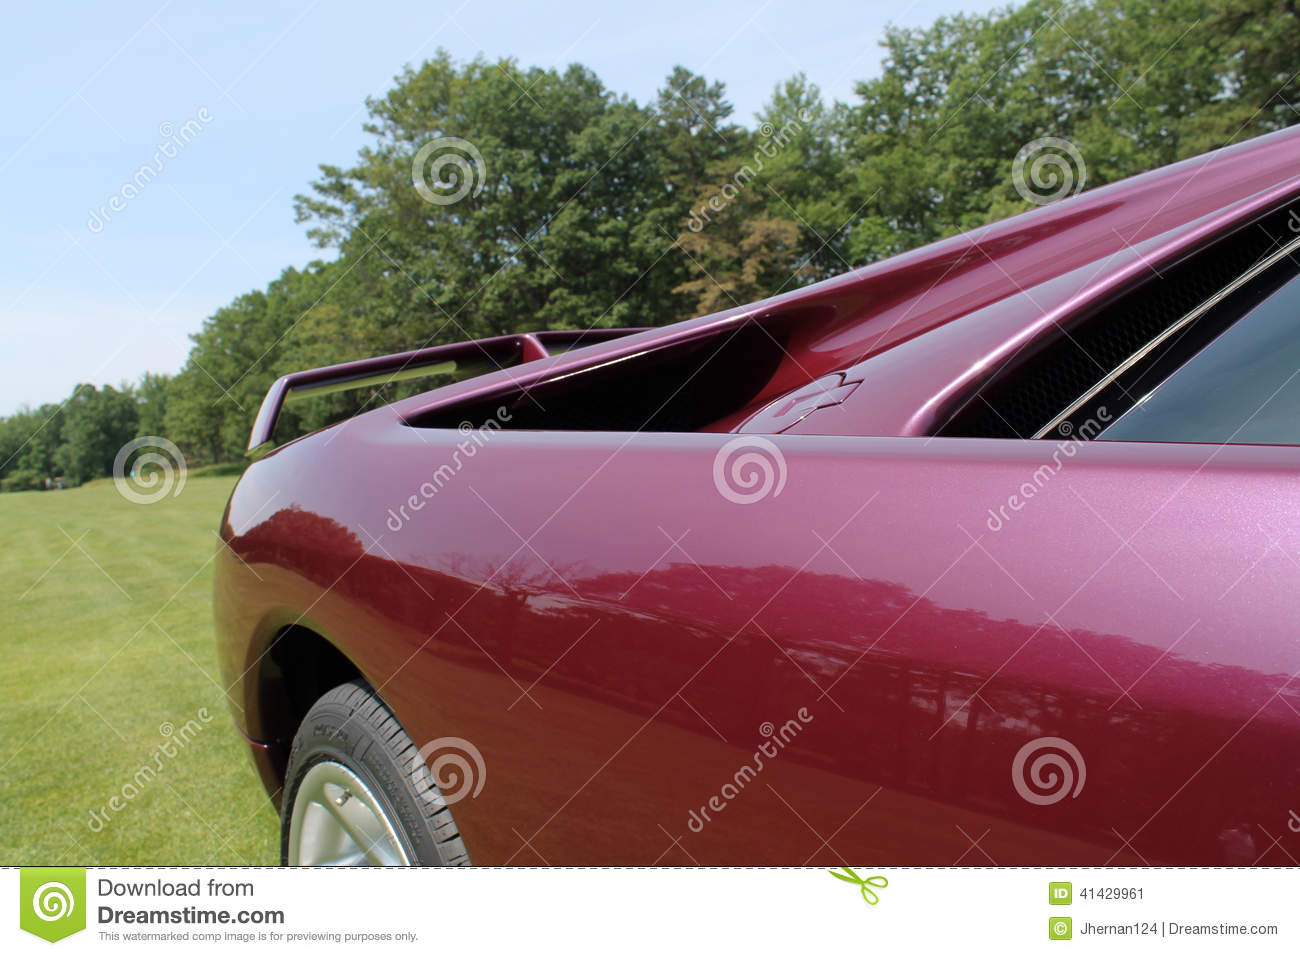 Supercar fender detail stock image  Image of cooling - 41429961